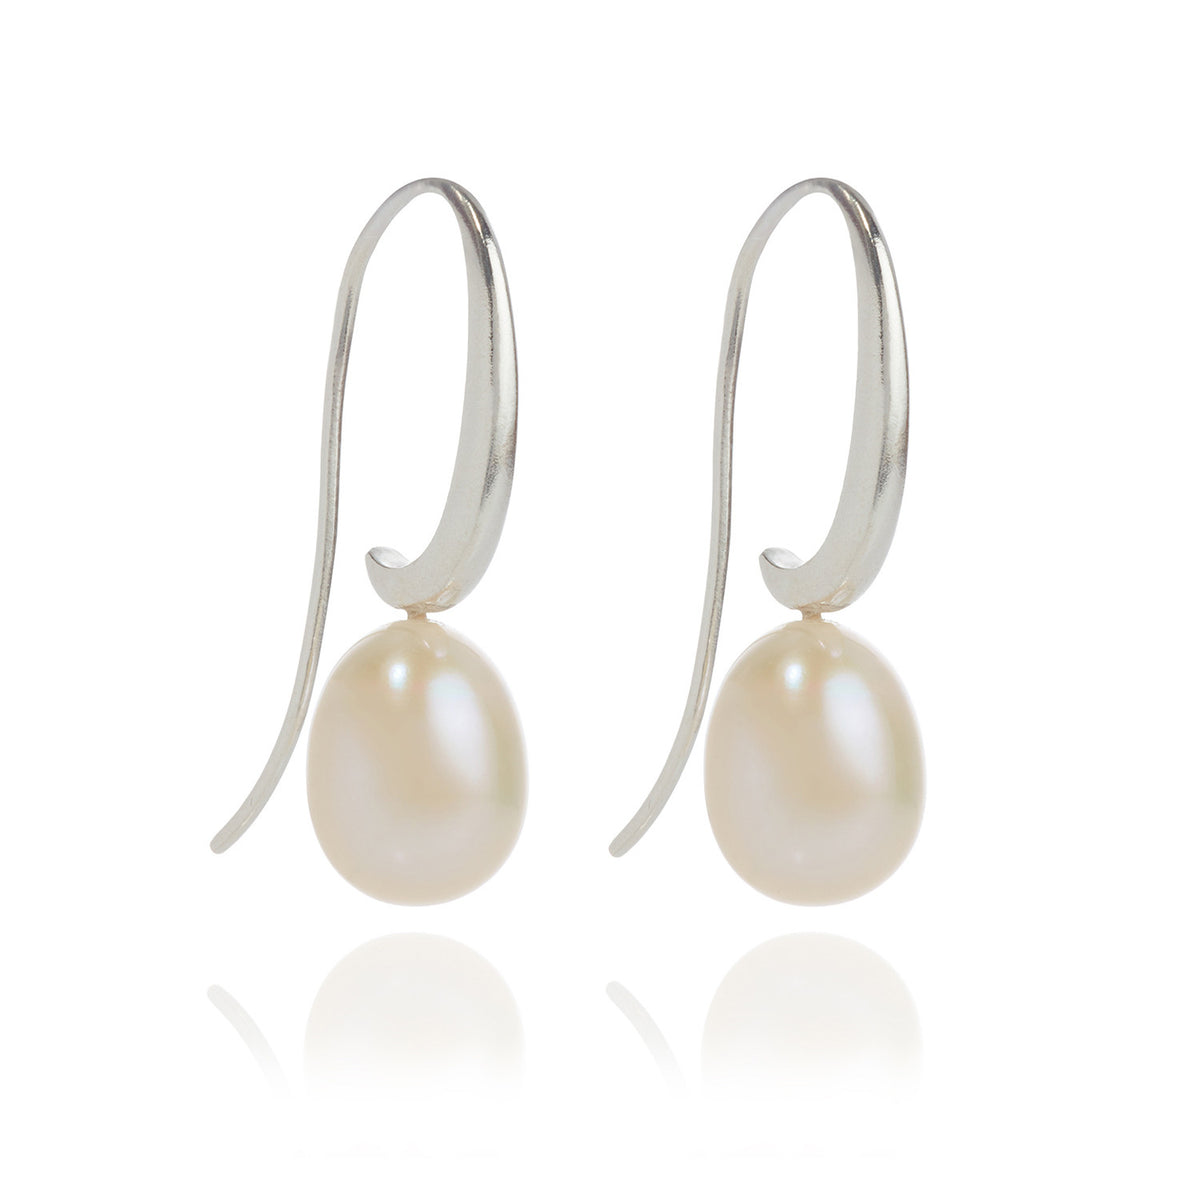 Joyful Shepherd Crook White Pearl Drop Earrings